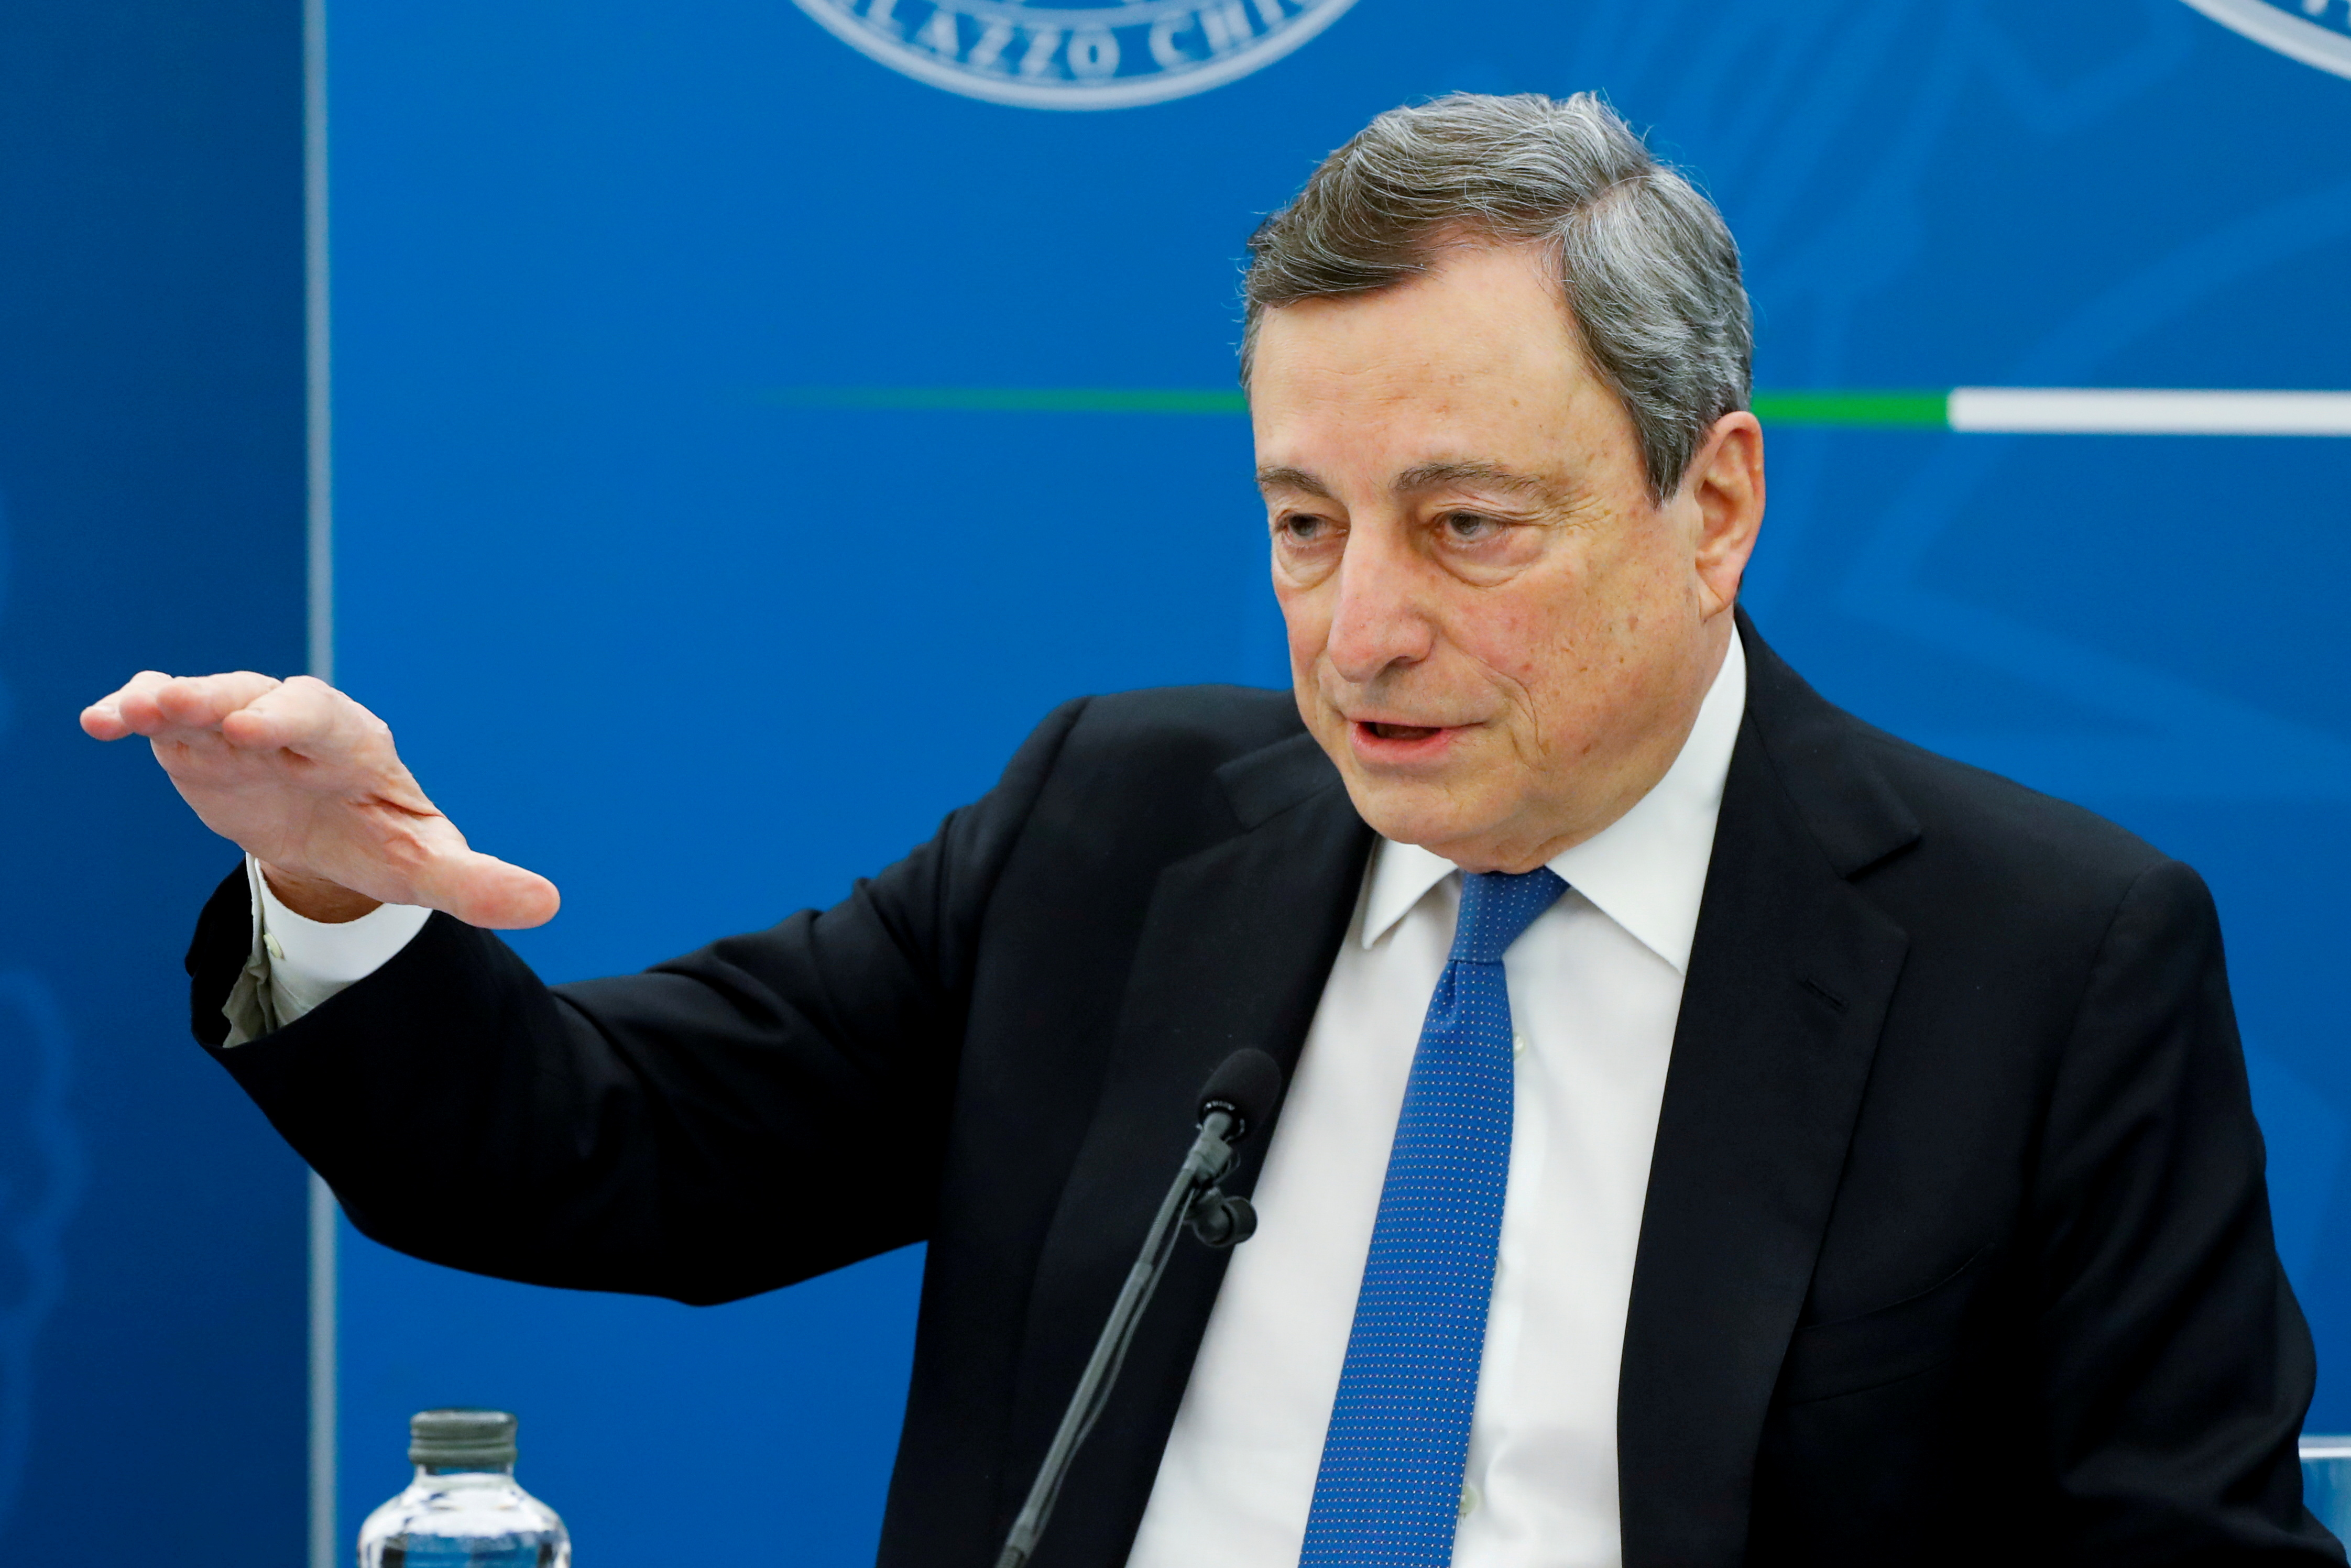 Italy's Prime Minister Mario Draghi gestures as he speaks at a news conference where he is expected to map out the country's next moves in loosening coronavirus disease (COVID-19) restrictions, in Rome, Italy, April 16, 2021. REUTERS/Remo Casilli/File Photo